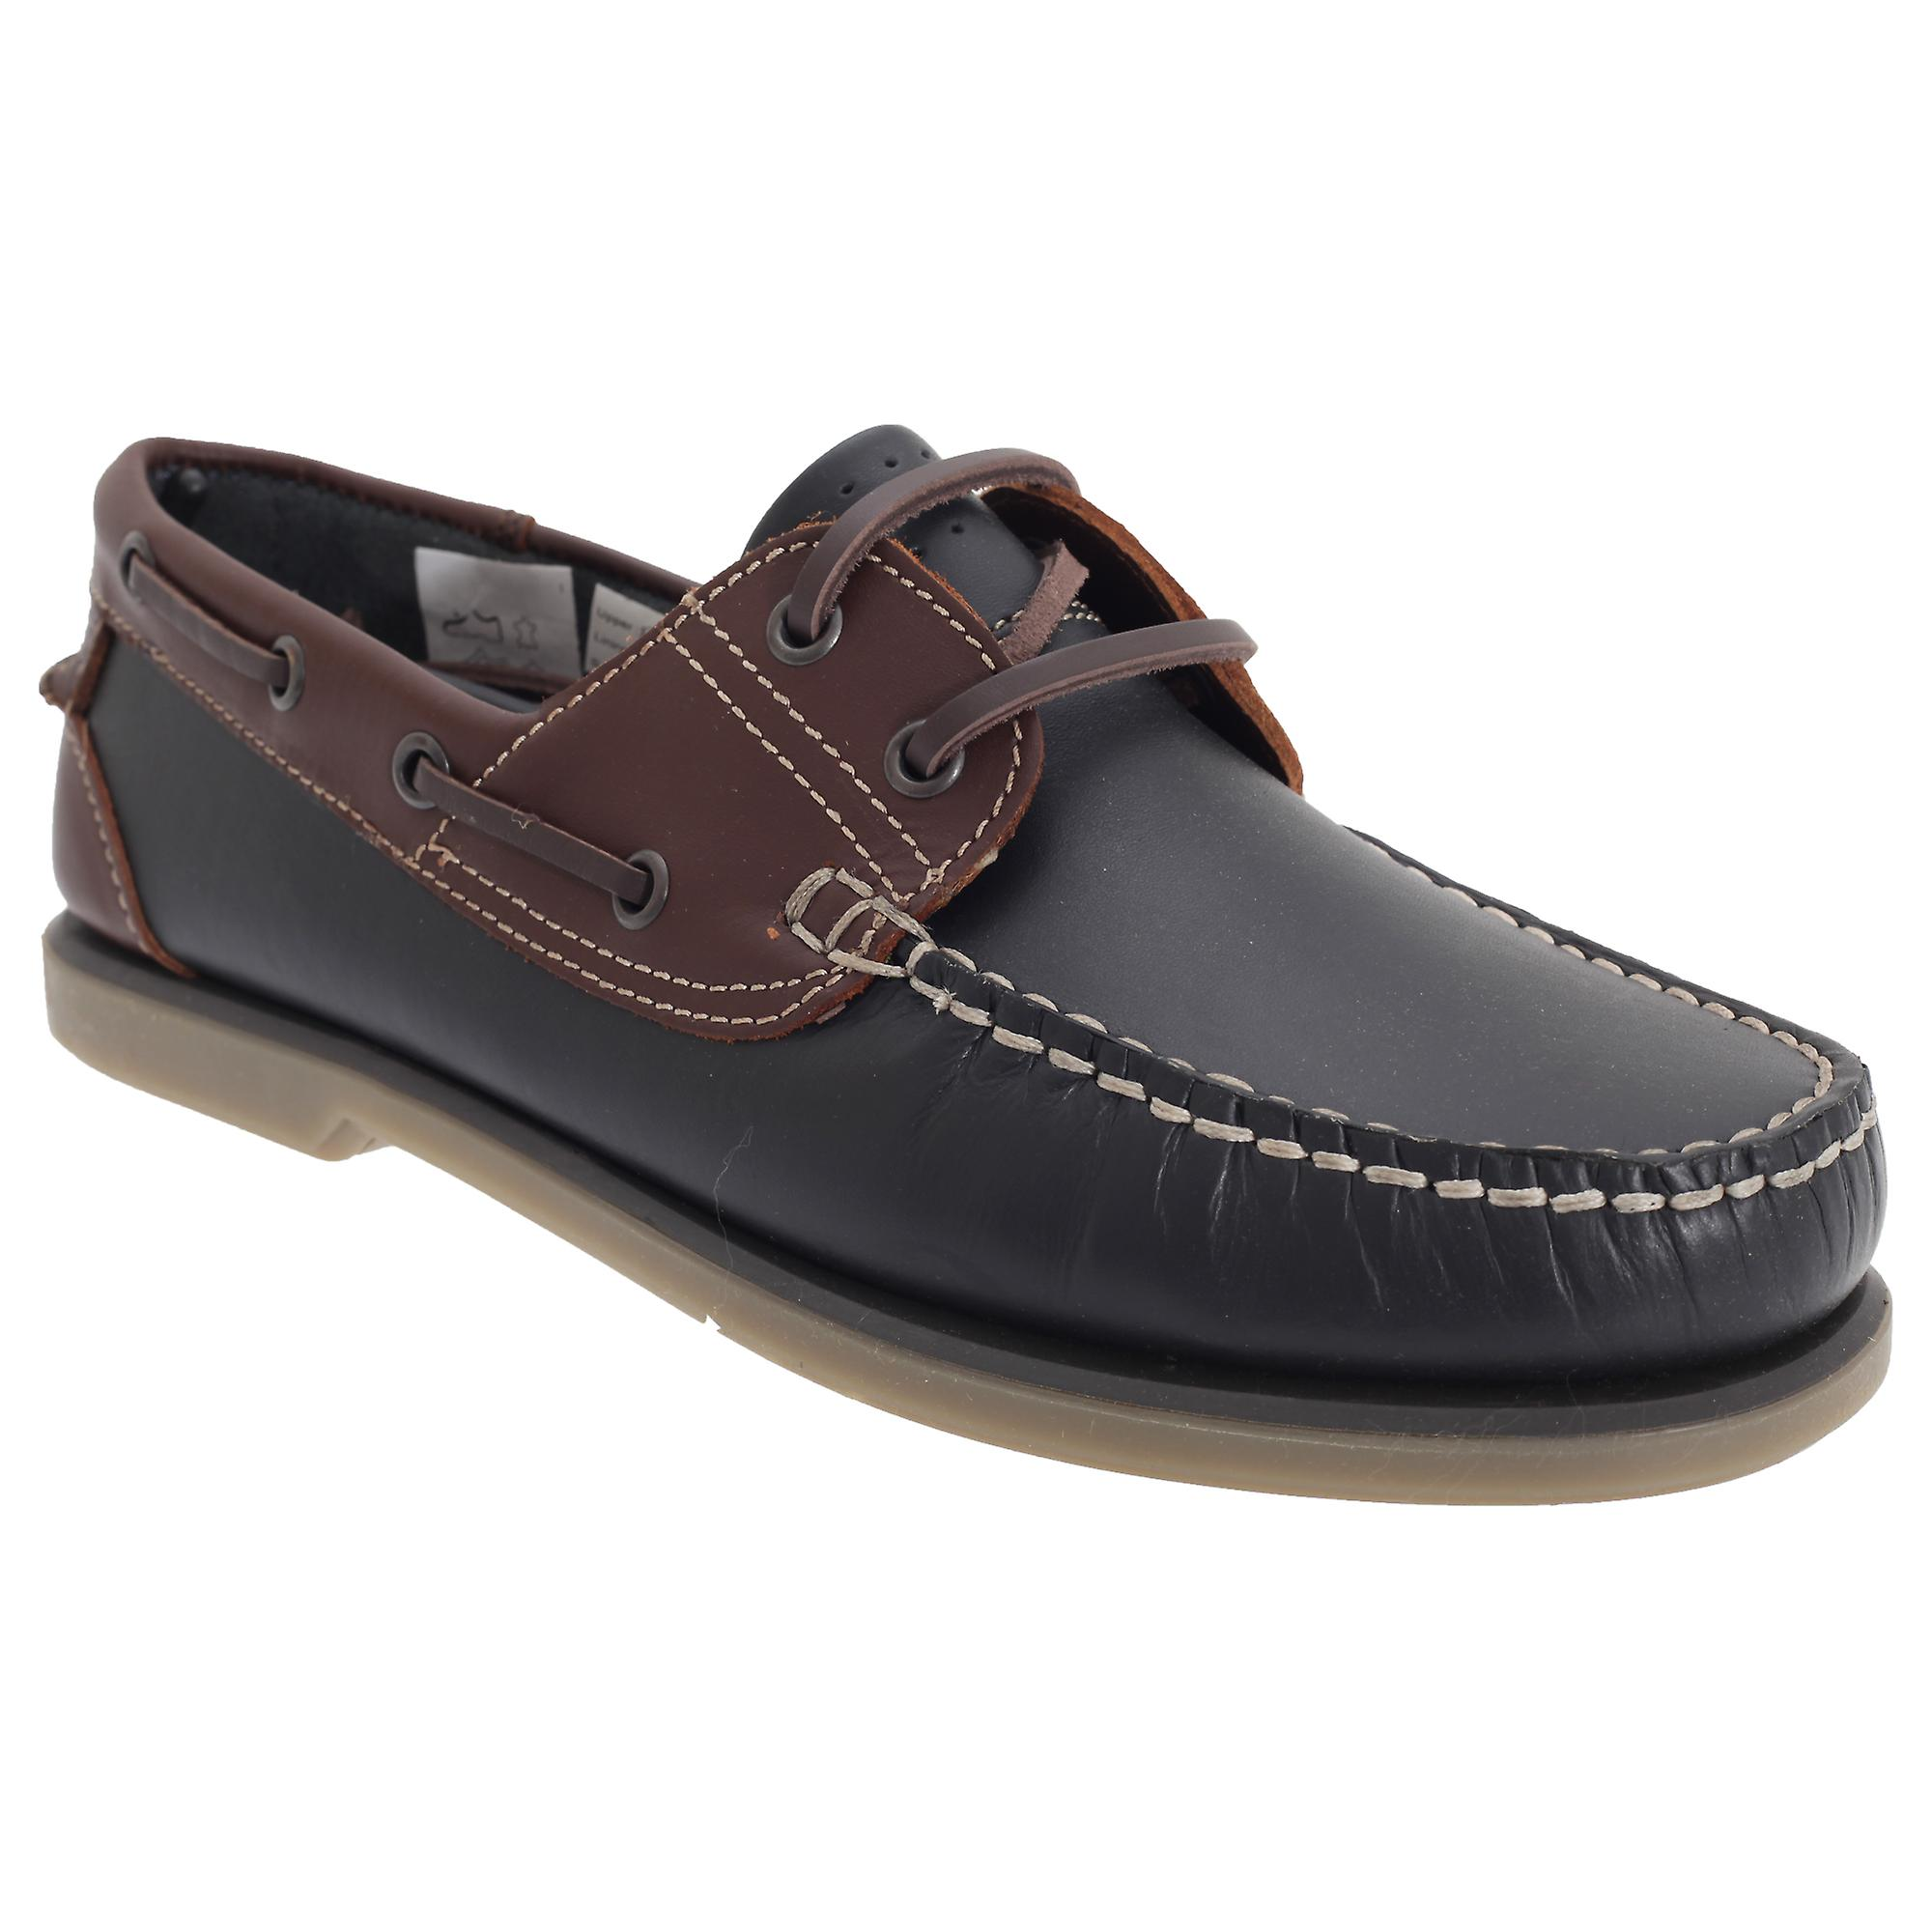 Dek Mens Mens Mens Moccasin Boat Shoes b45b62